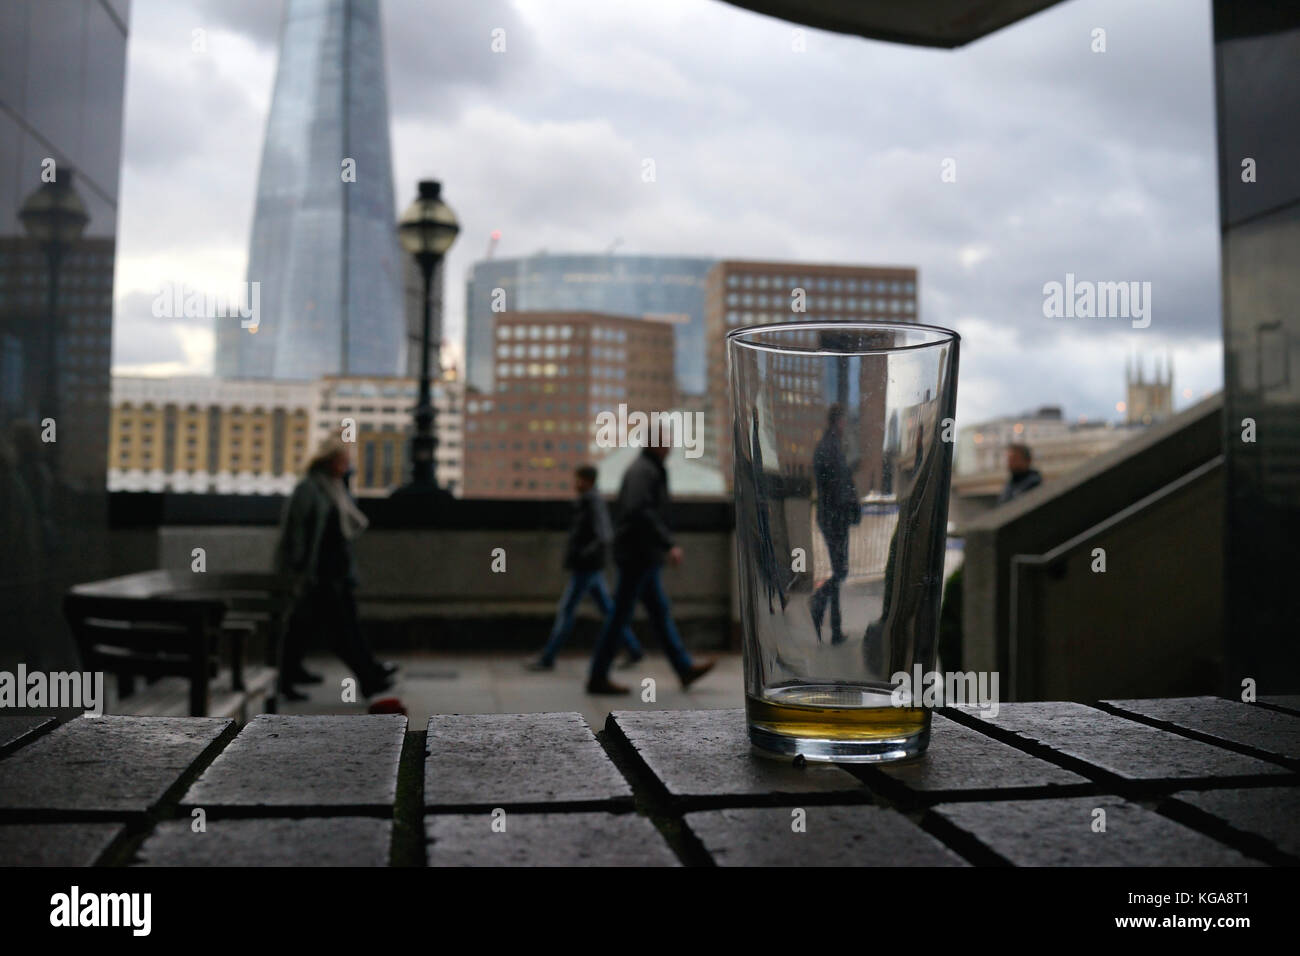 A pint glass by the side of the River Thames, London - Stock Image